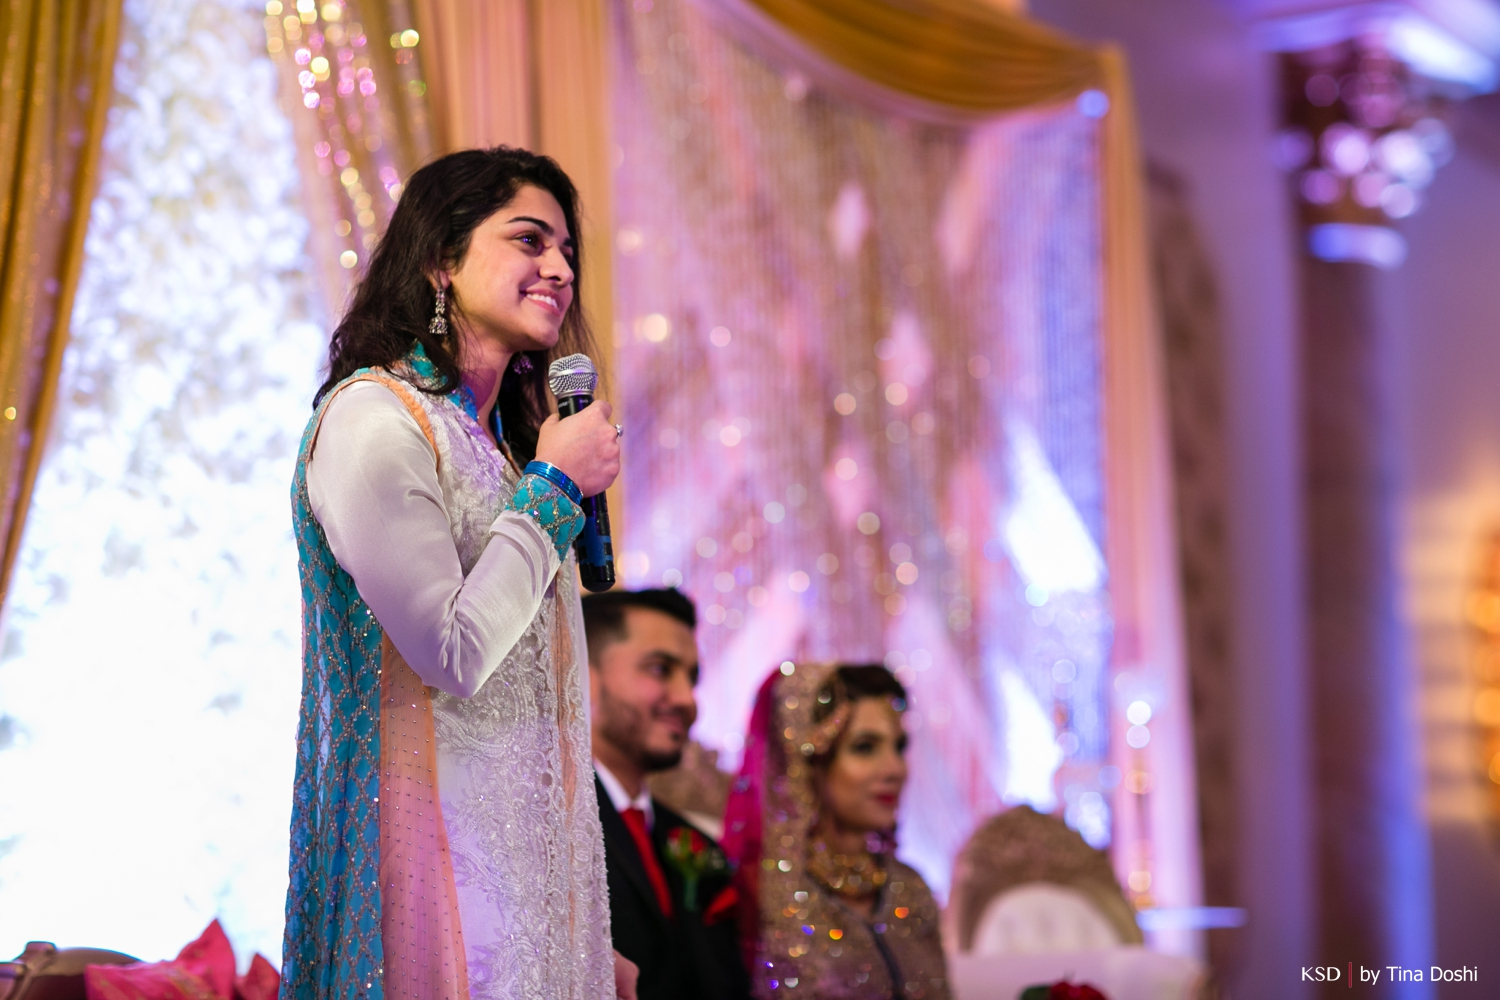 nj_south_asian_wedding_0130